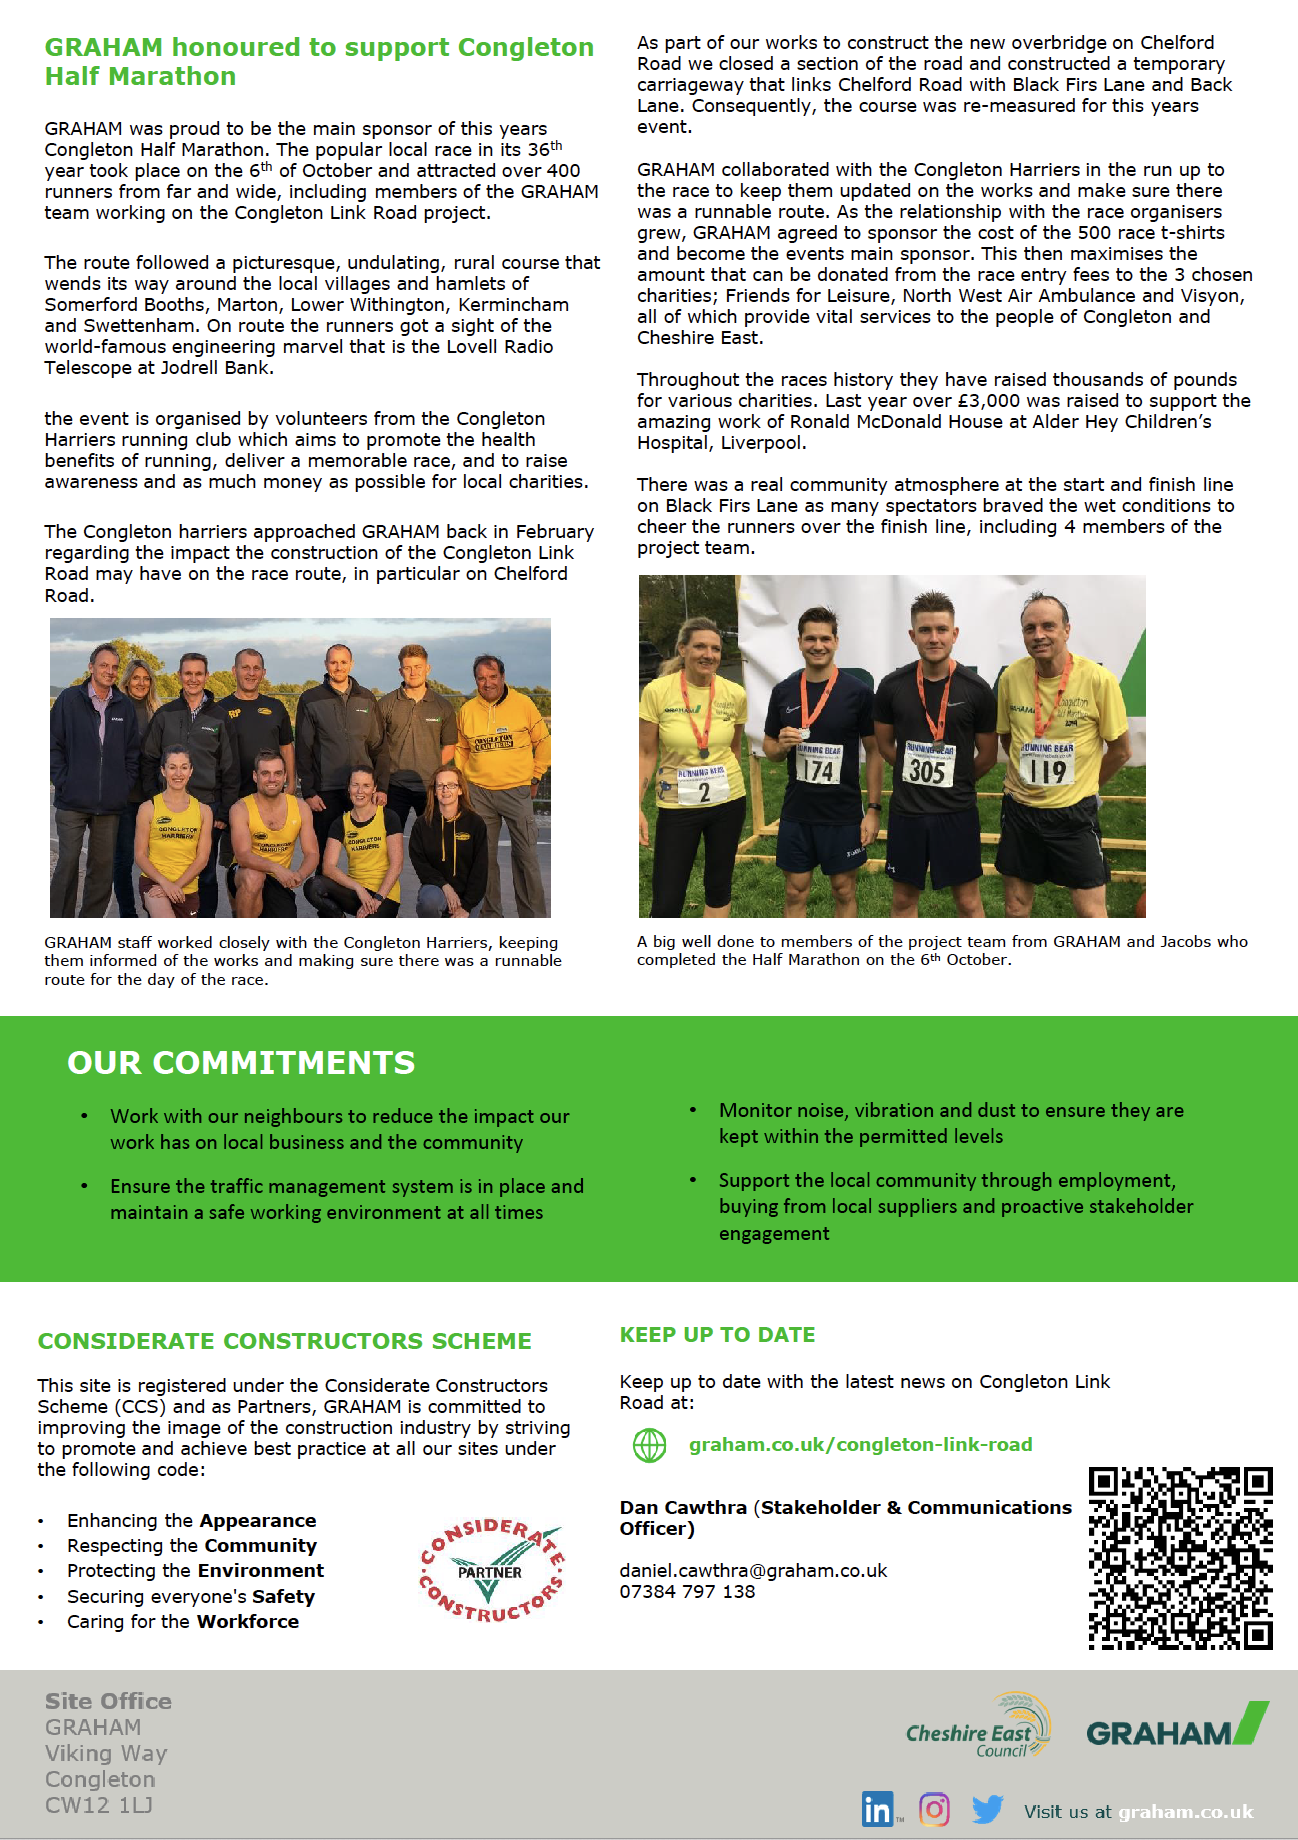 Congleton Link Road Newsletter page 2